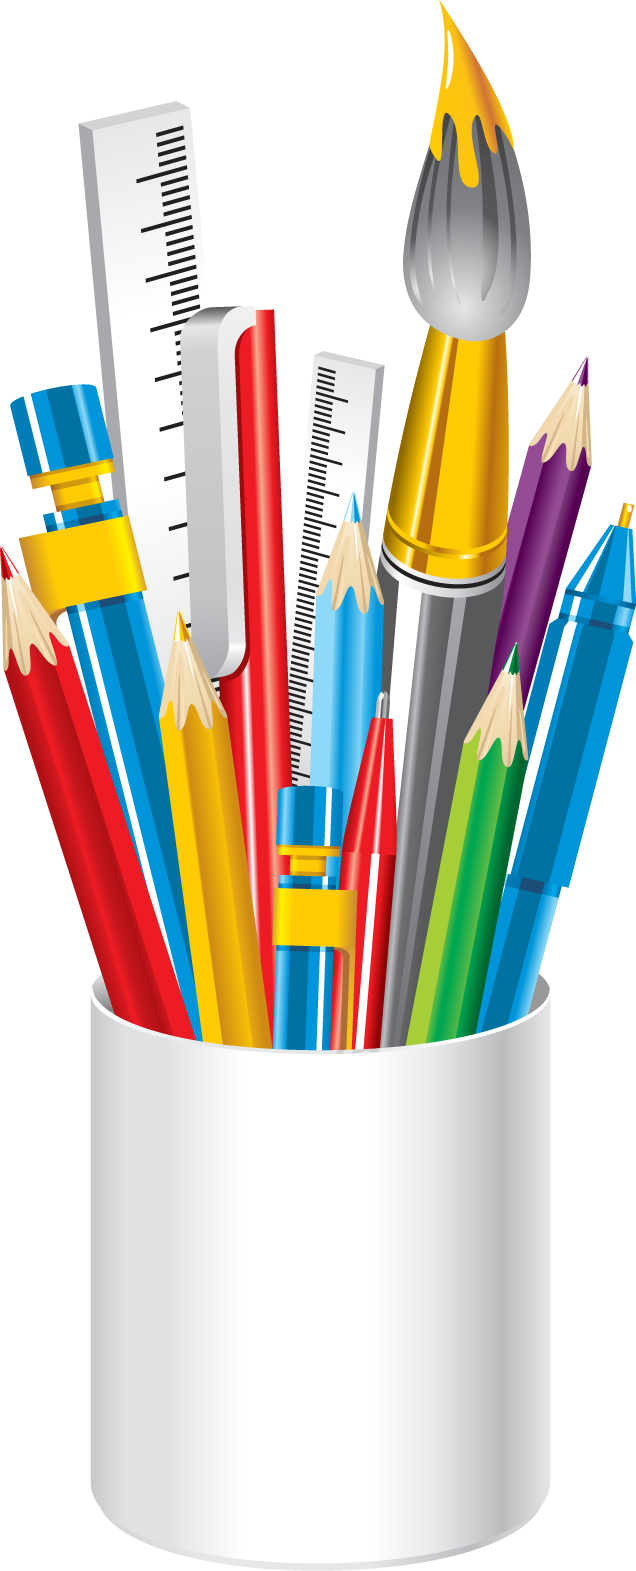 School stationery clipart clip free library Web Design & Development | Pinterest | Art supplies and Clip art clip free library